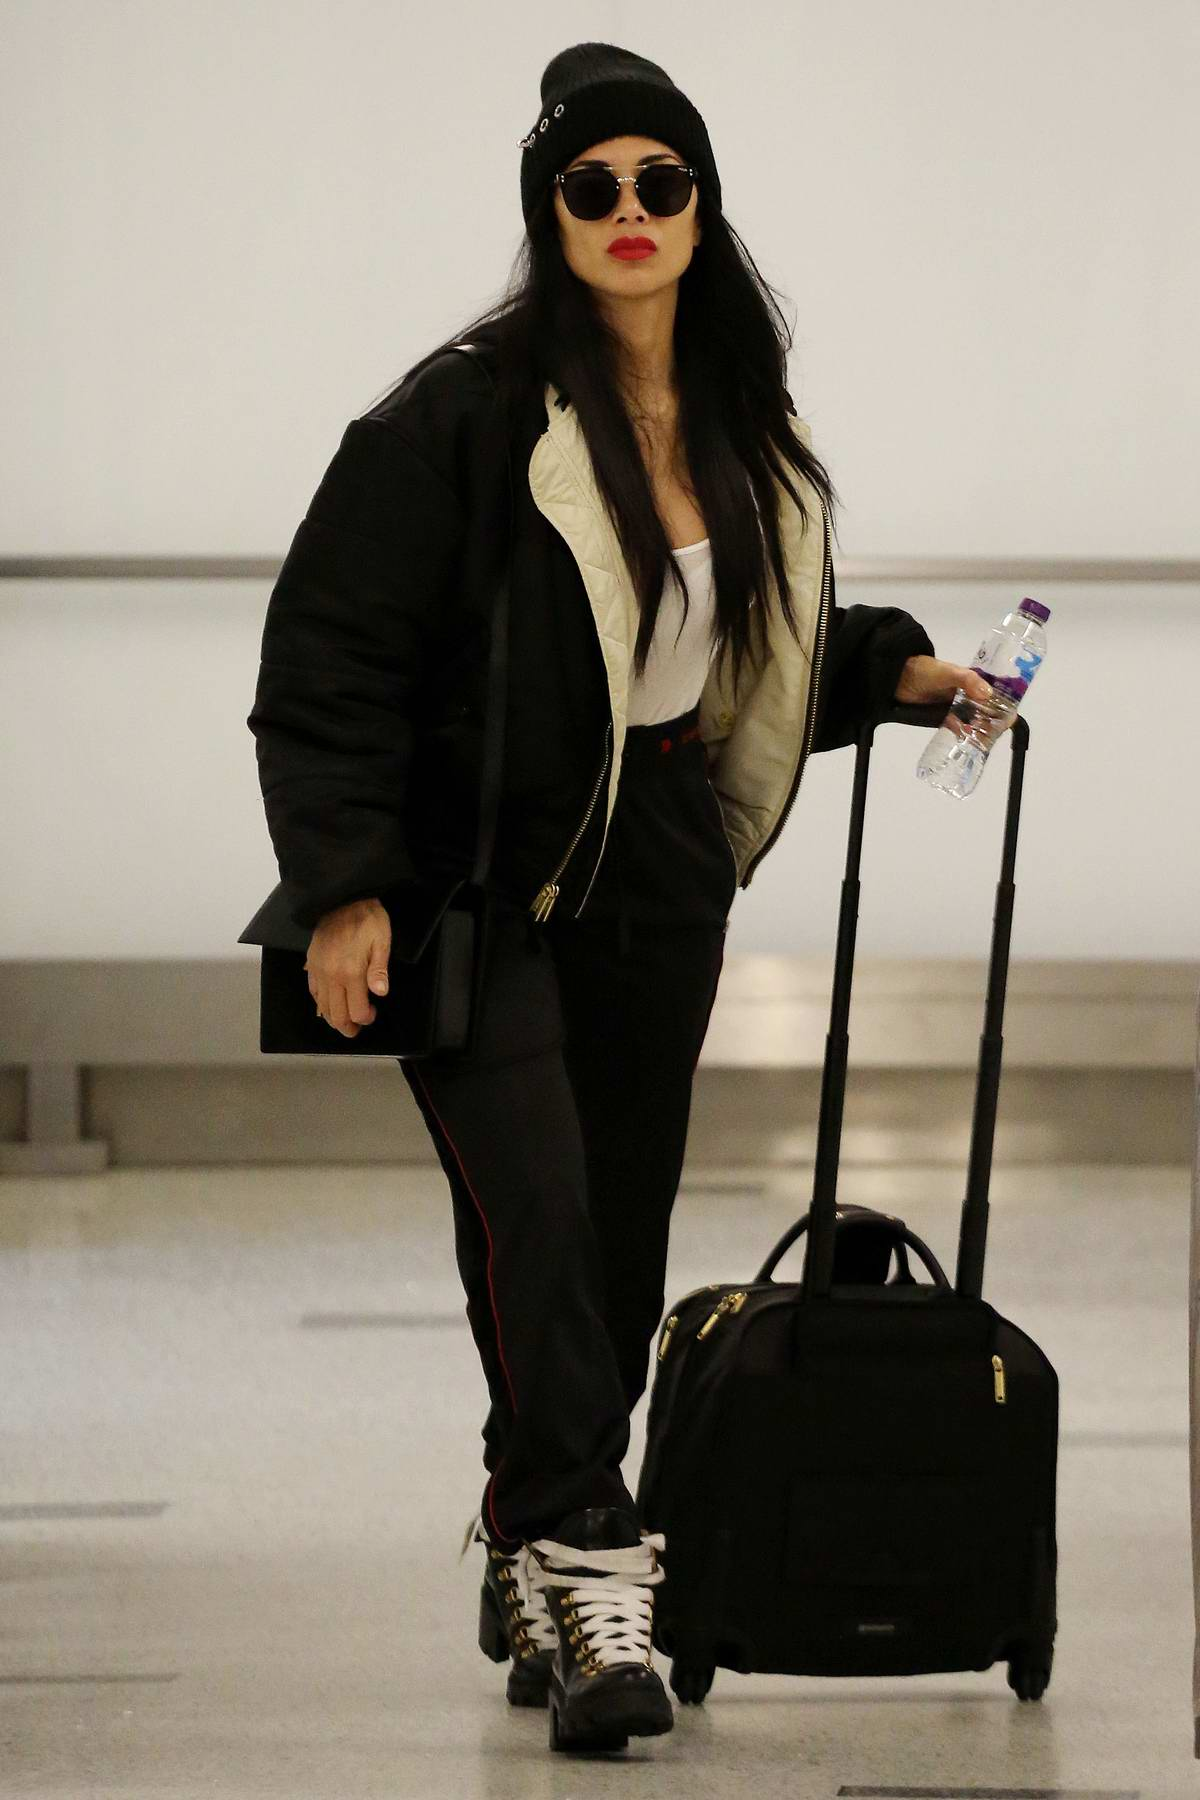 Nicole Scherzinger sports all black as she jets into LAX airport in Los Angeles